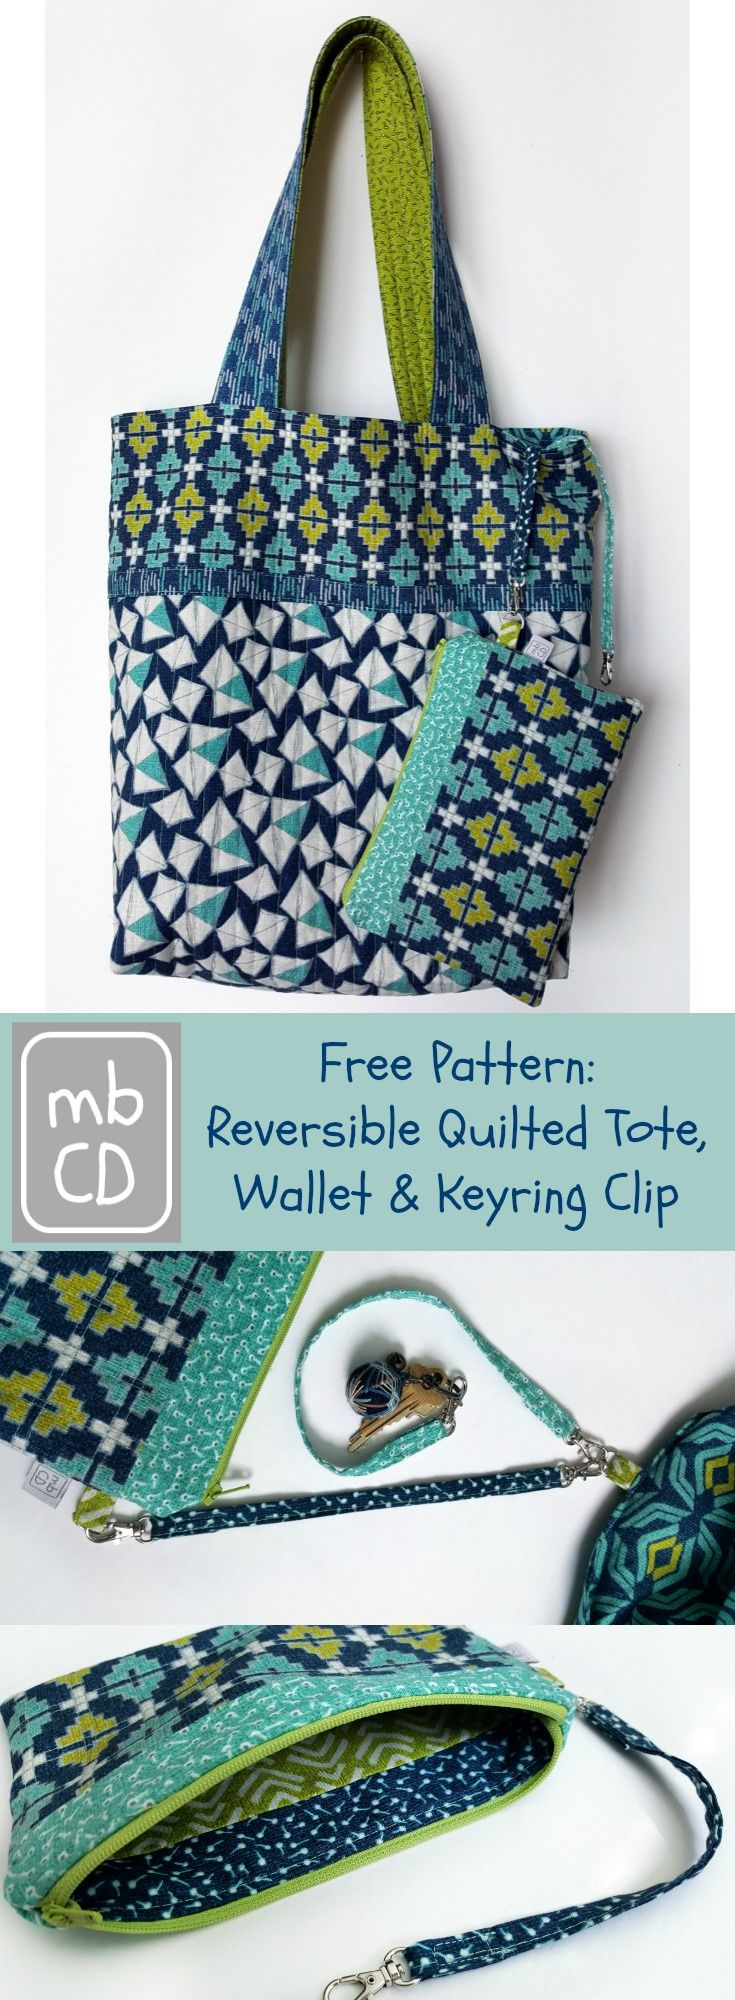 Free Pattern for a Reversible Quilted Tote with zippered pocket and detachable wallet and key ring clip - available now http://madebychrissied.blogspot.com/2016/07/Detachable-Wallet-Key-Ring-Tote-Bag-Free-Pattern.html